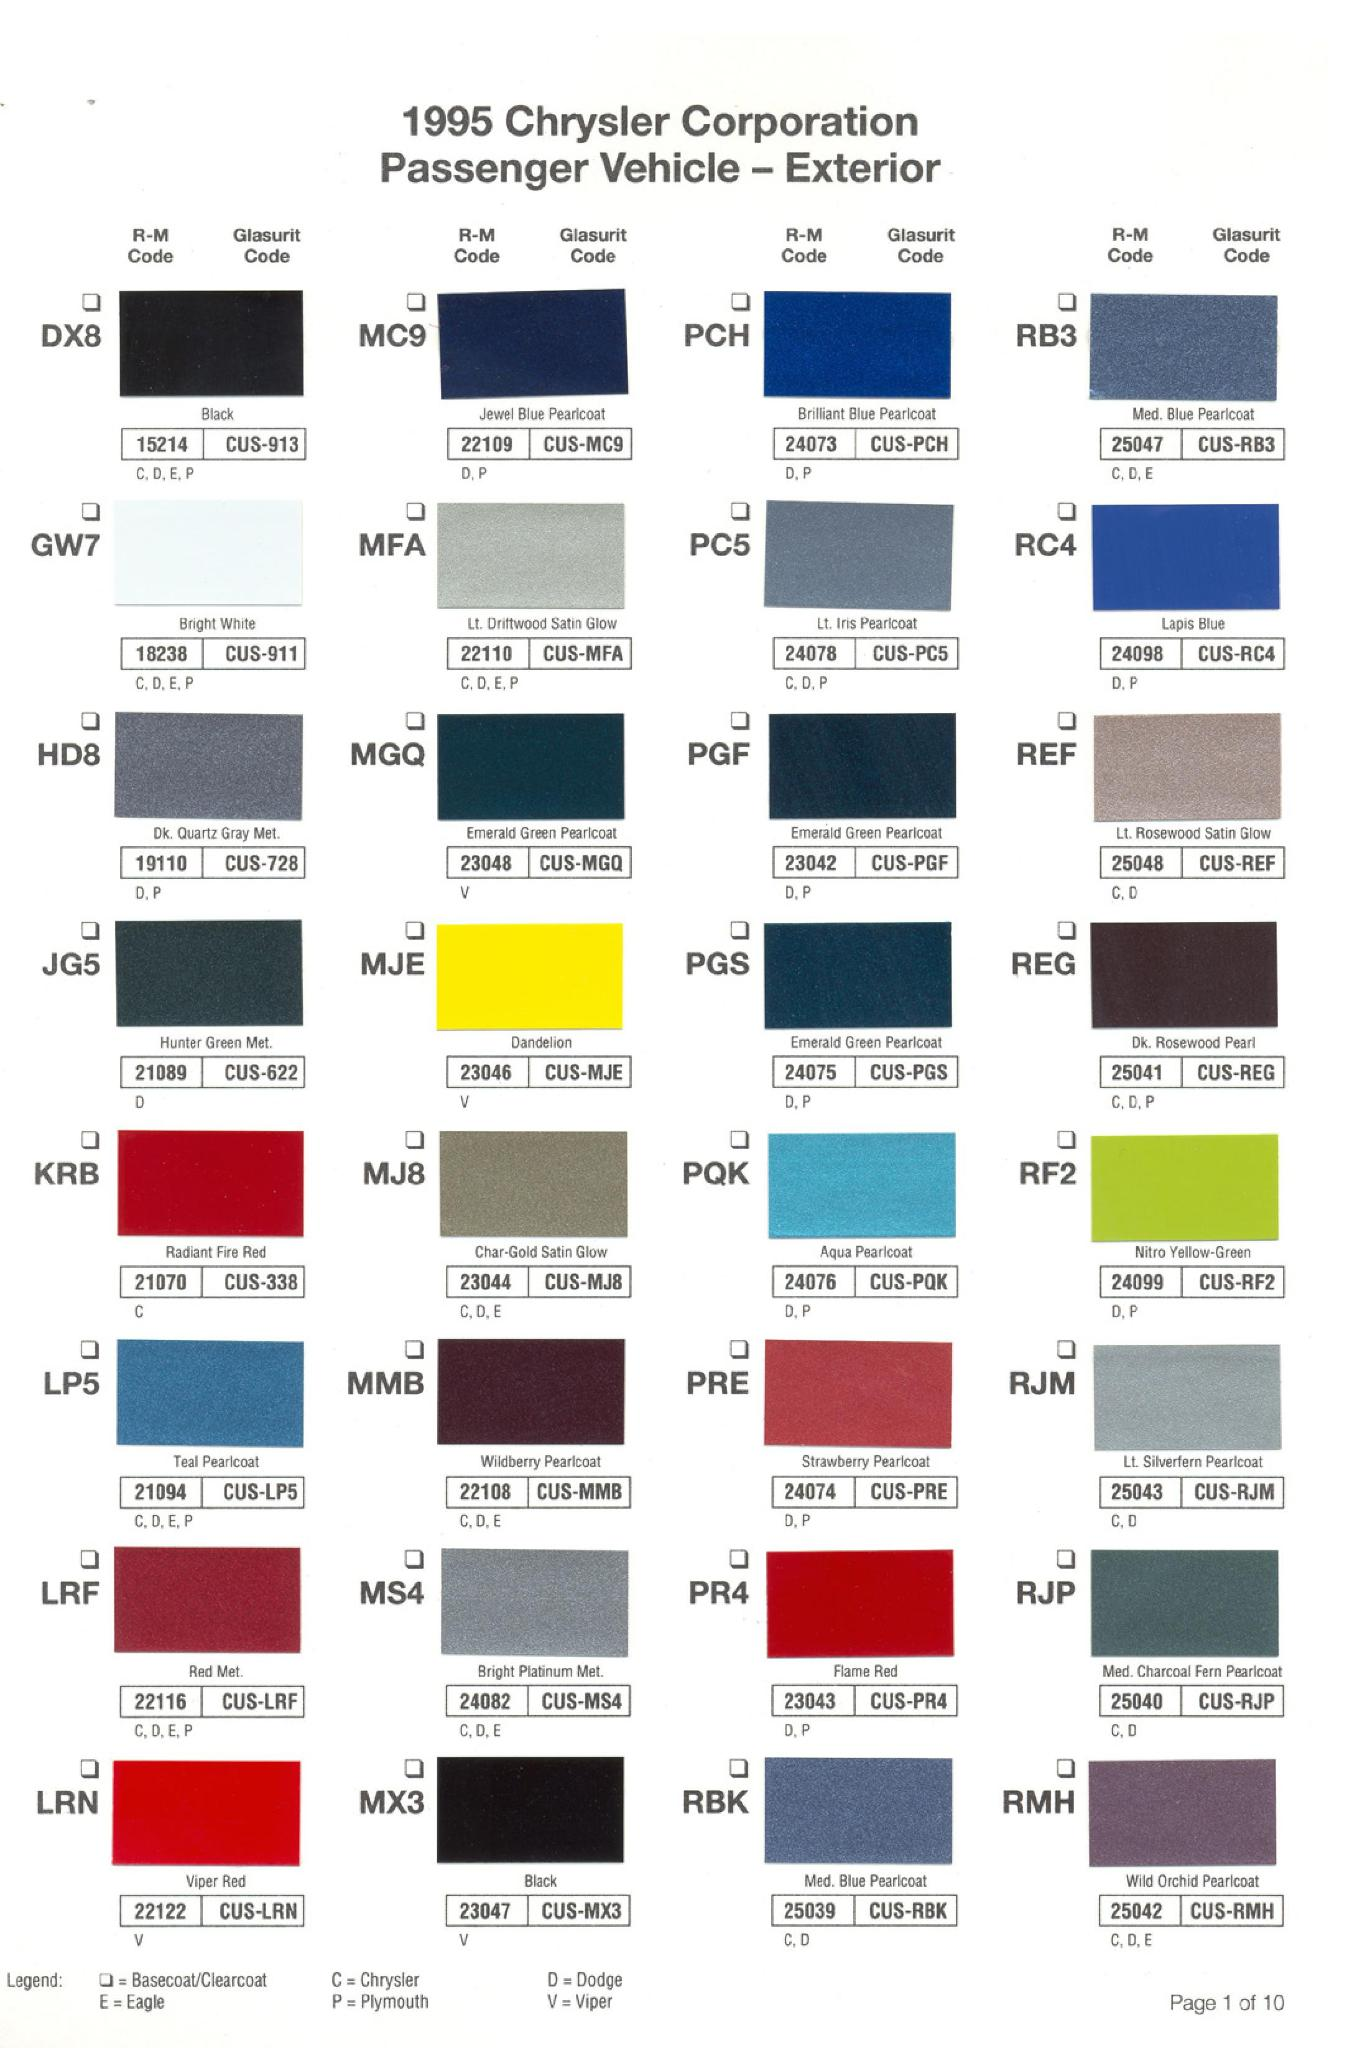 Chrysler Paint (Color) Code Chart For Exterior Vehicles